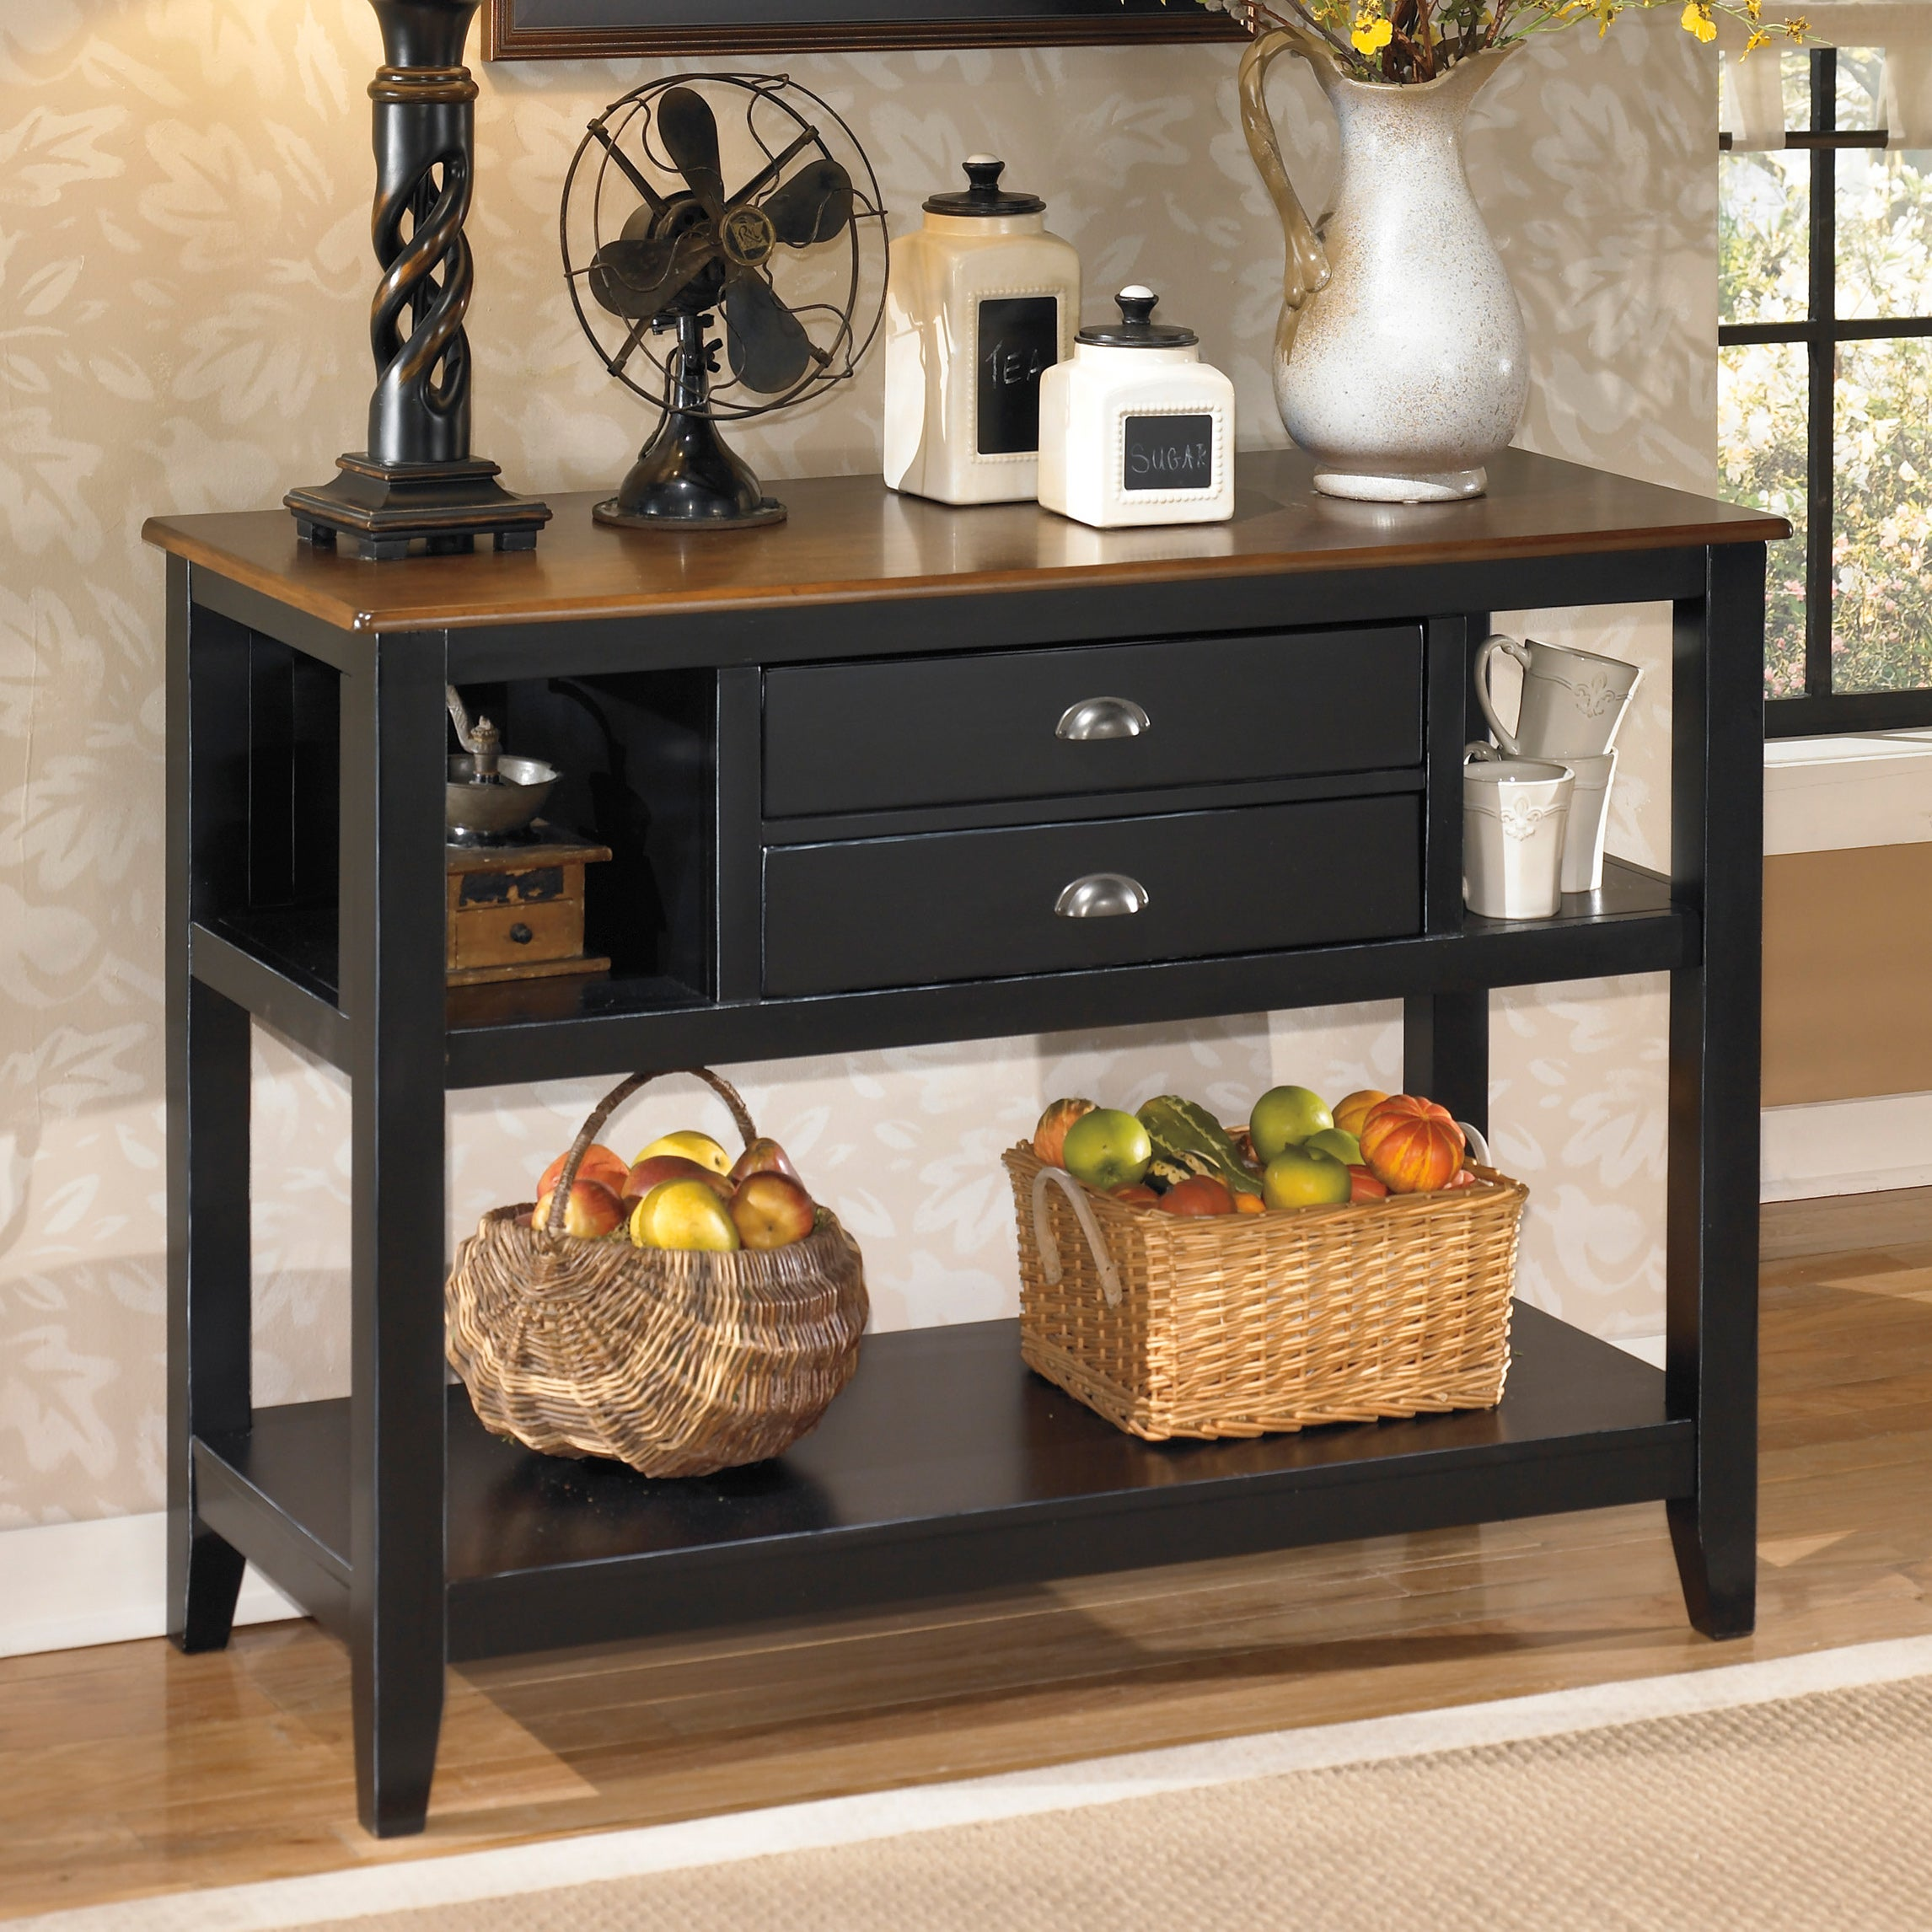 Signature Design by Ashley 'Owingsville' Black/ Brown Dining Room Server